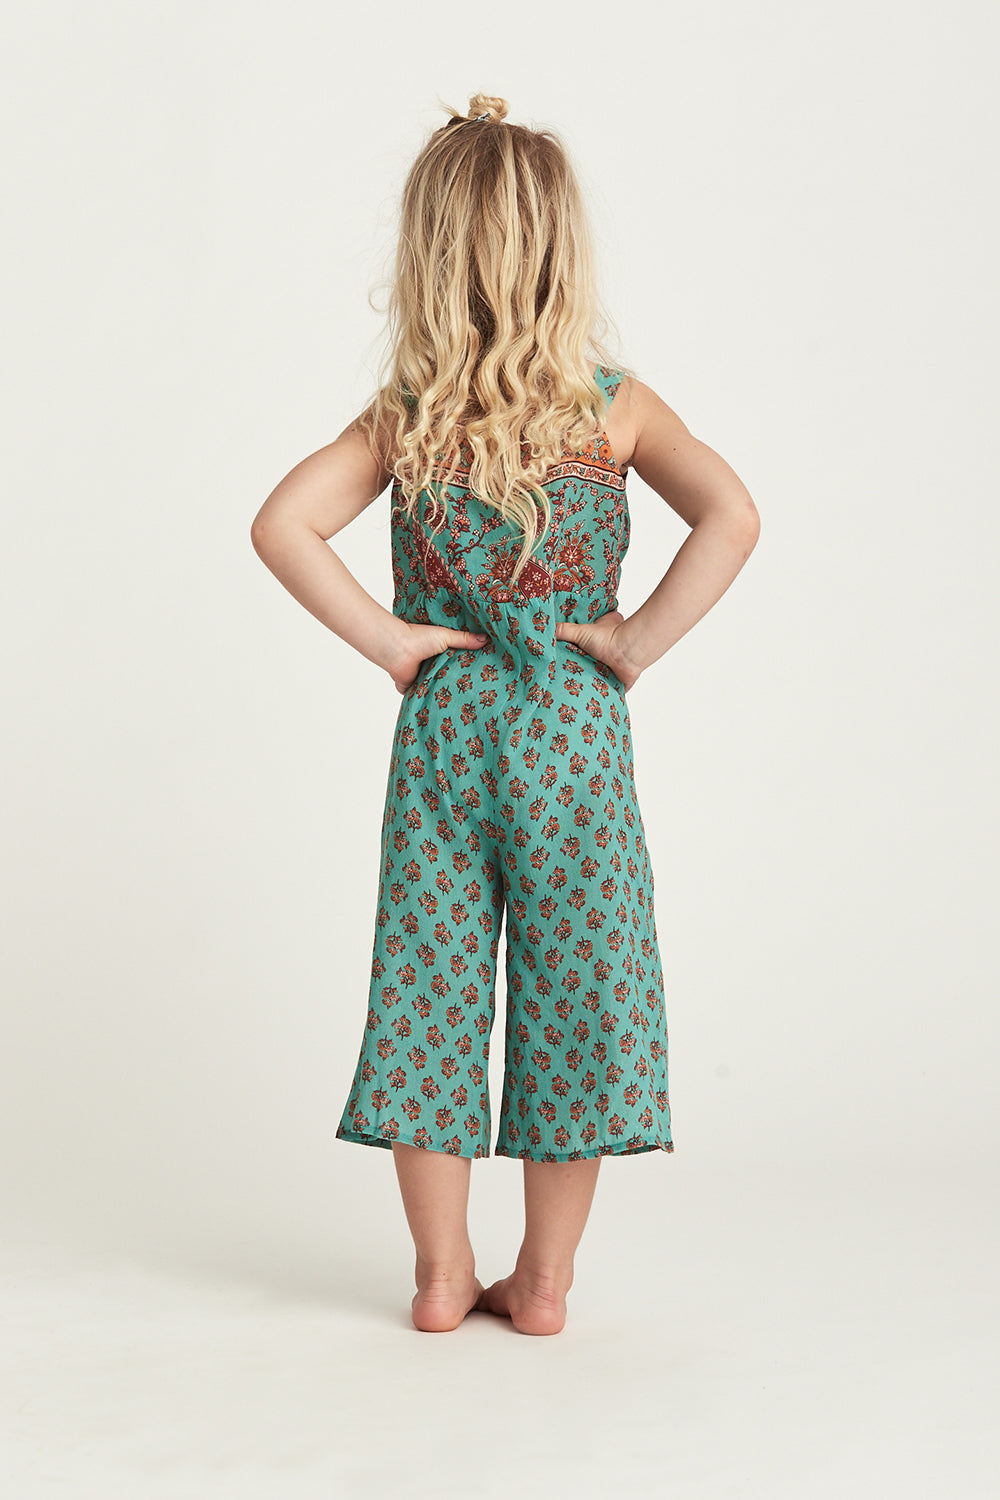 Serafina Kiddies Jumpsuit in Kingfisher